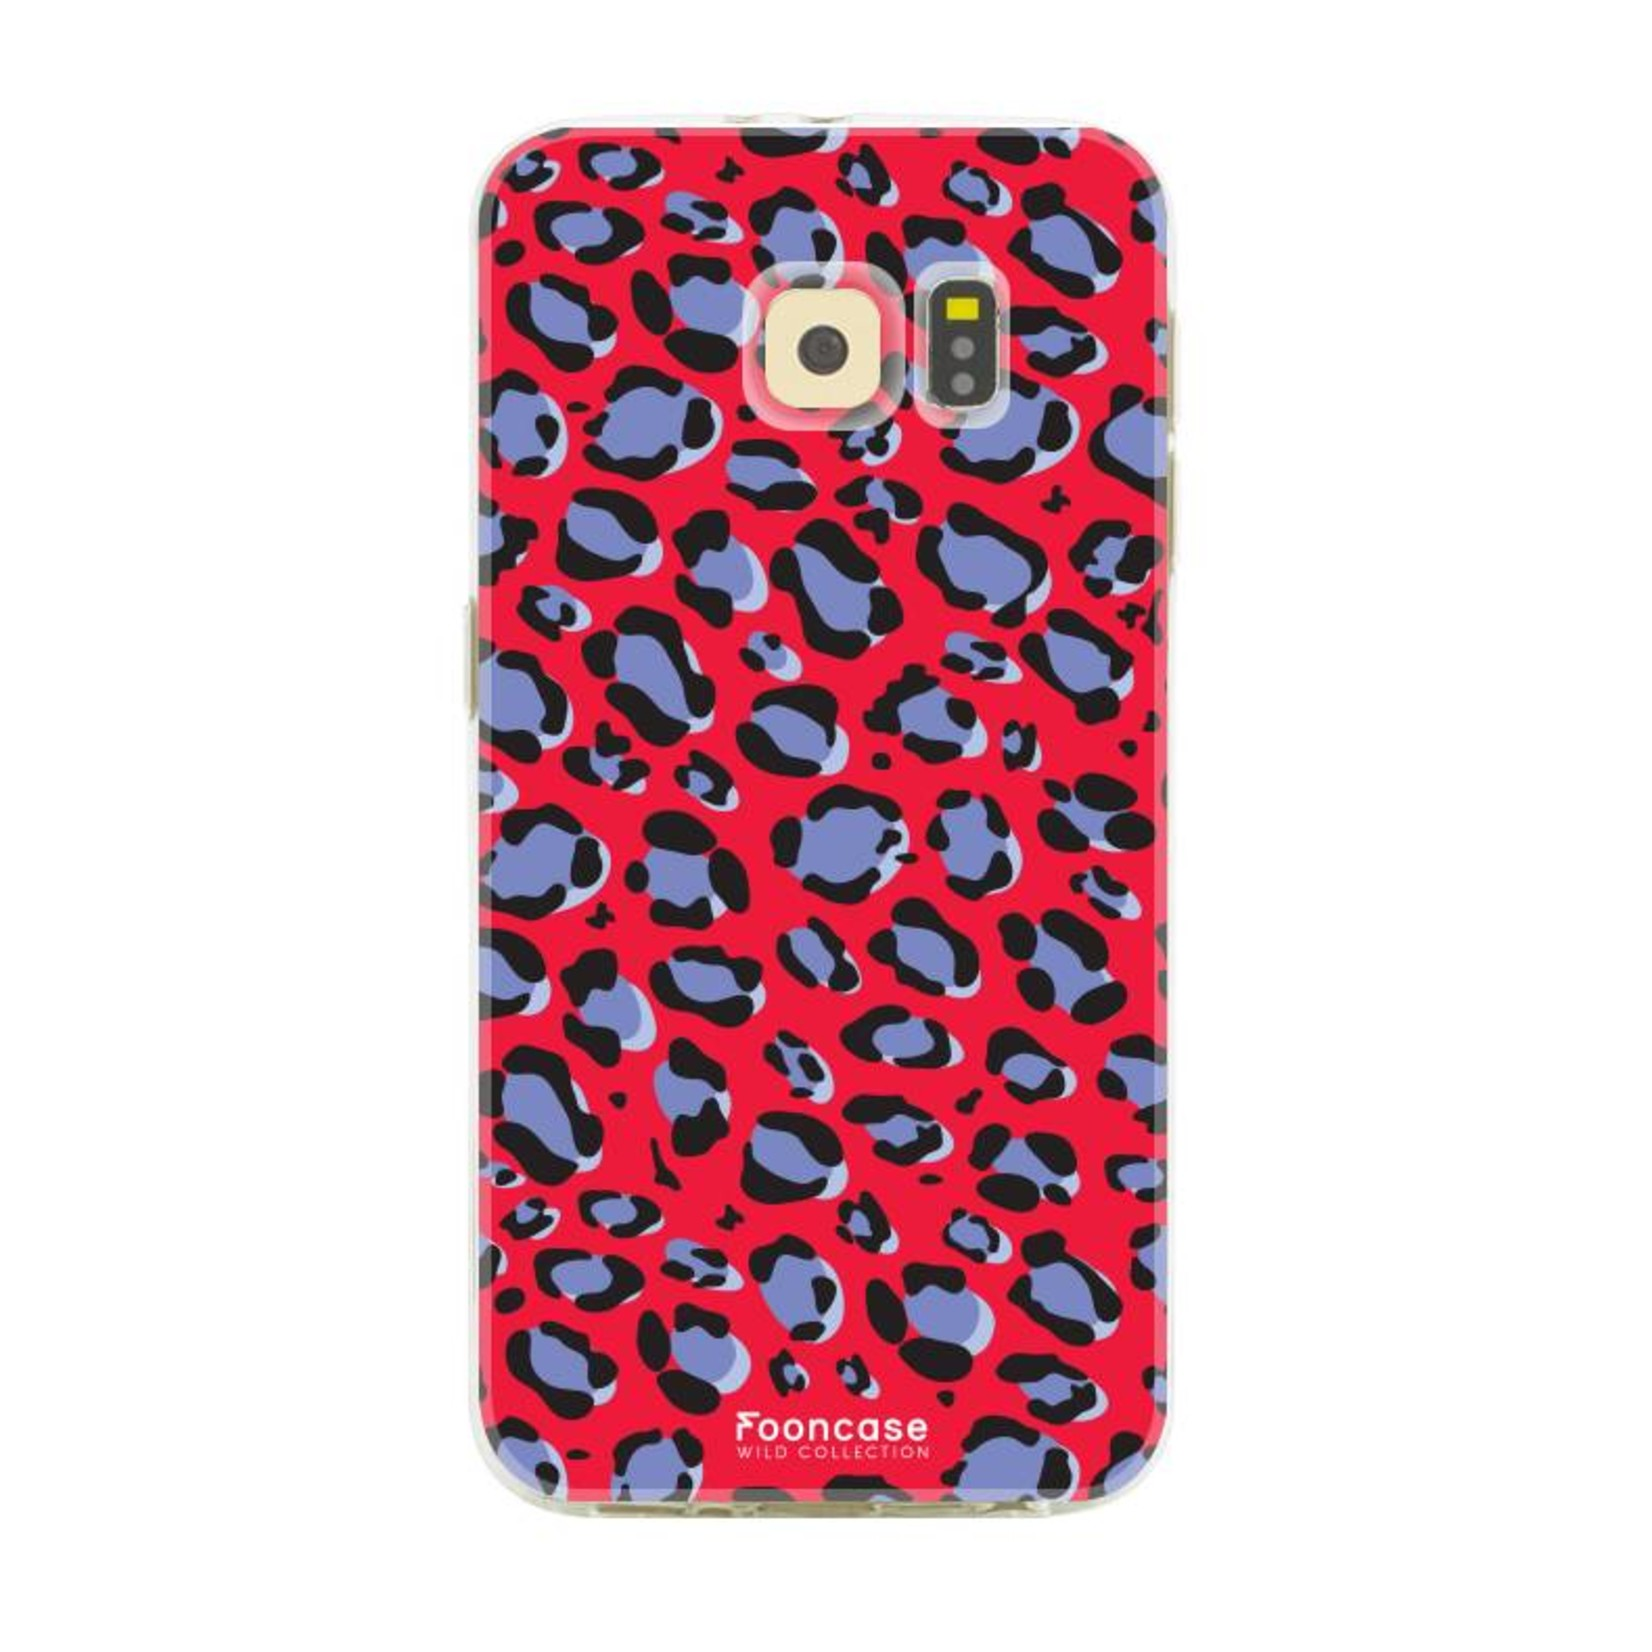 FOONCASE Samsung Galaxy S6 hoesje TPU Soft Case - Back Cover - WILD COLLECTION / Luipaard / Leopard print / Rood